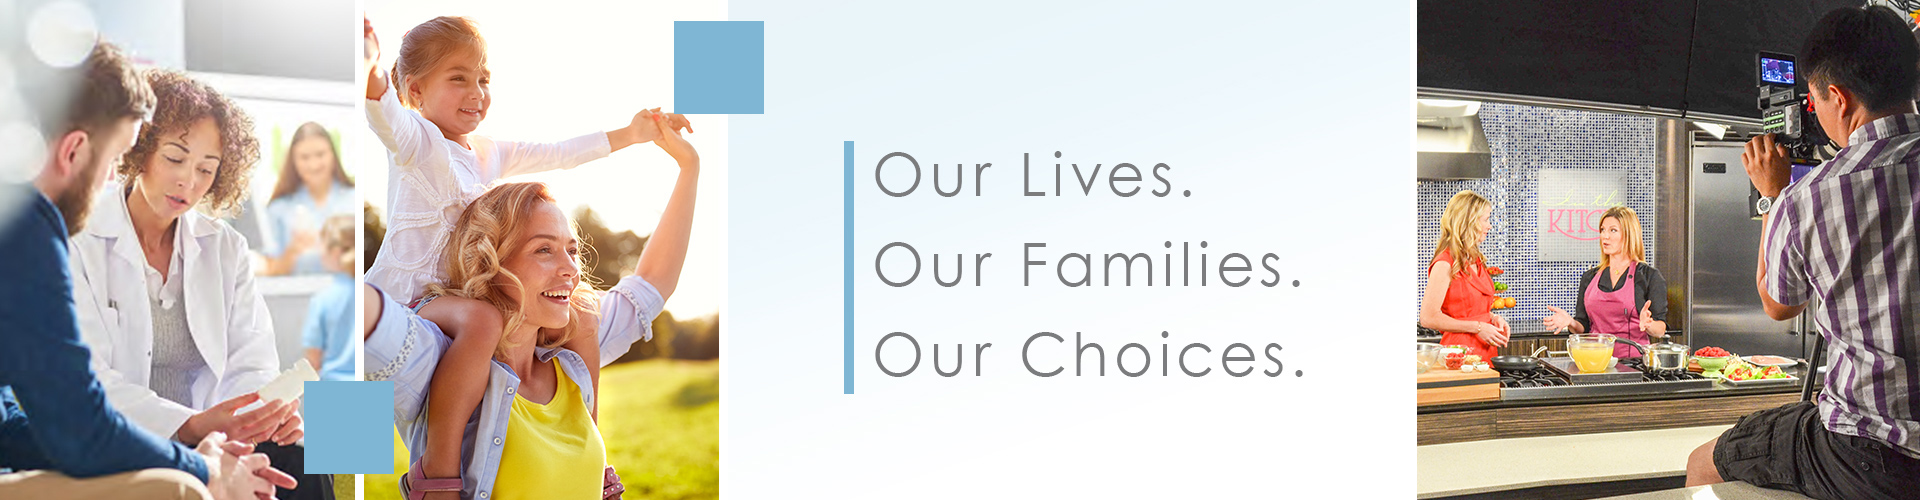 Our Lives. Our Families. Our Choices.